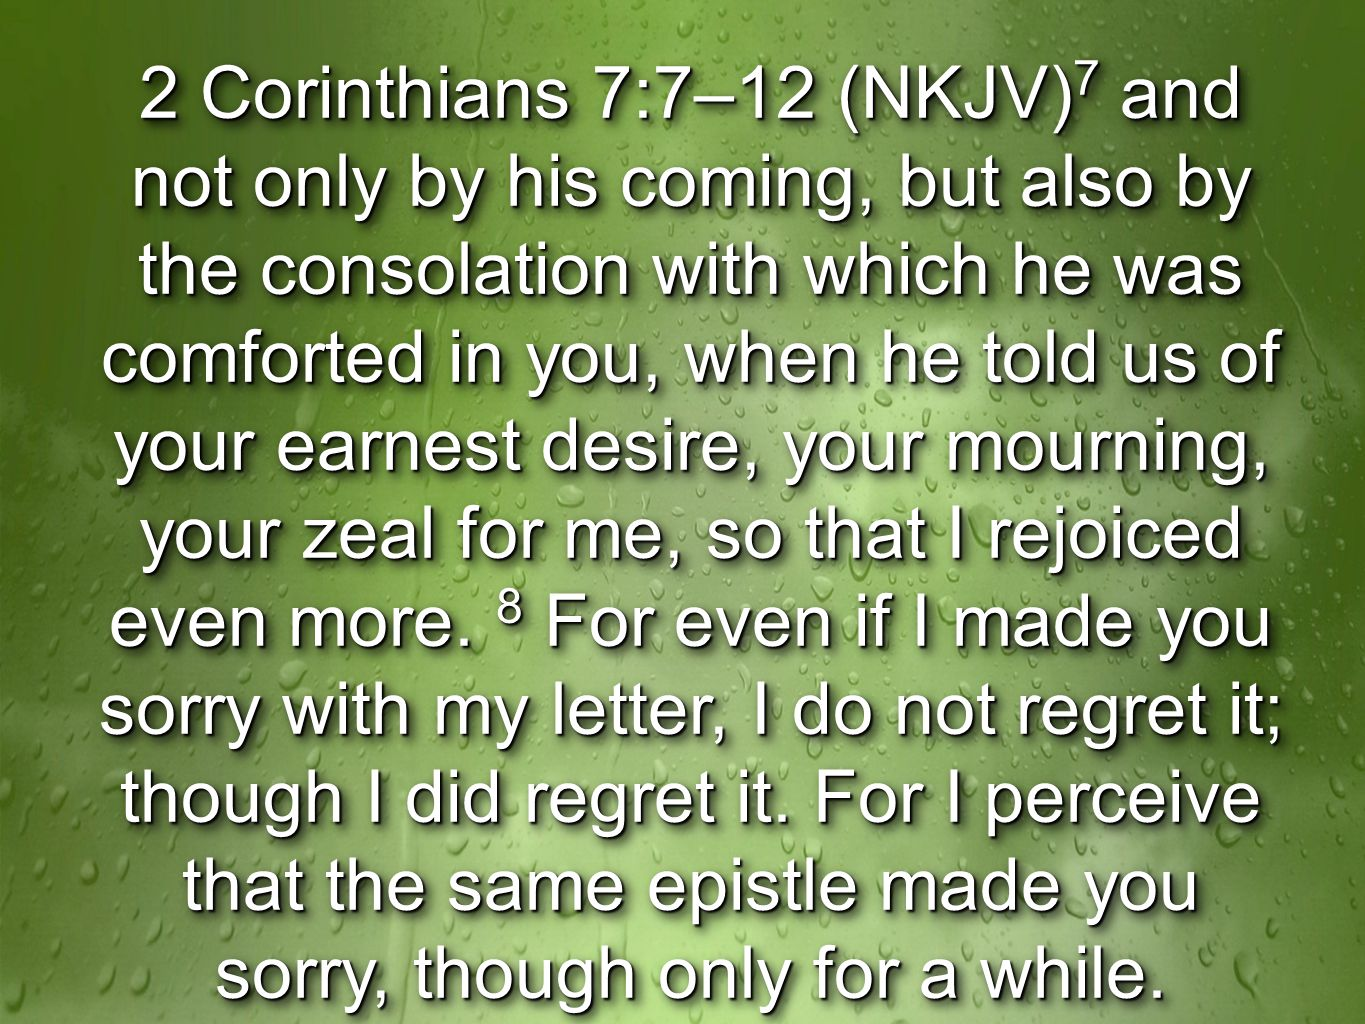 2 Corinthians 7:7–12 (NKJV) 7 and not only by his coming, but also by the consolation with which he was comforted in you, when he told us of your earnest desire, your mourning, your zeal for me, so that I rejoiced even more.